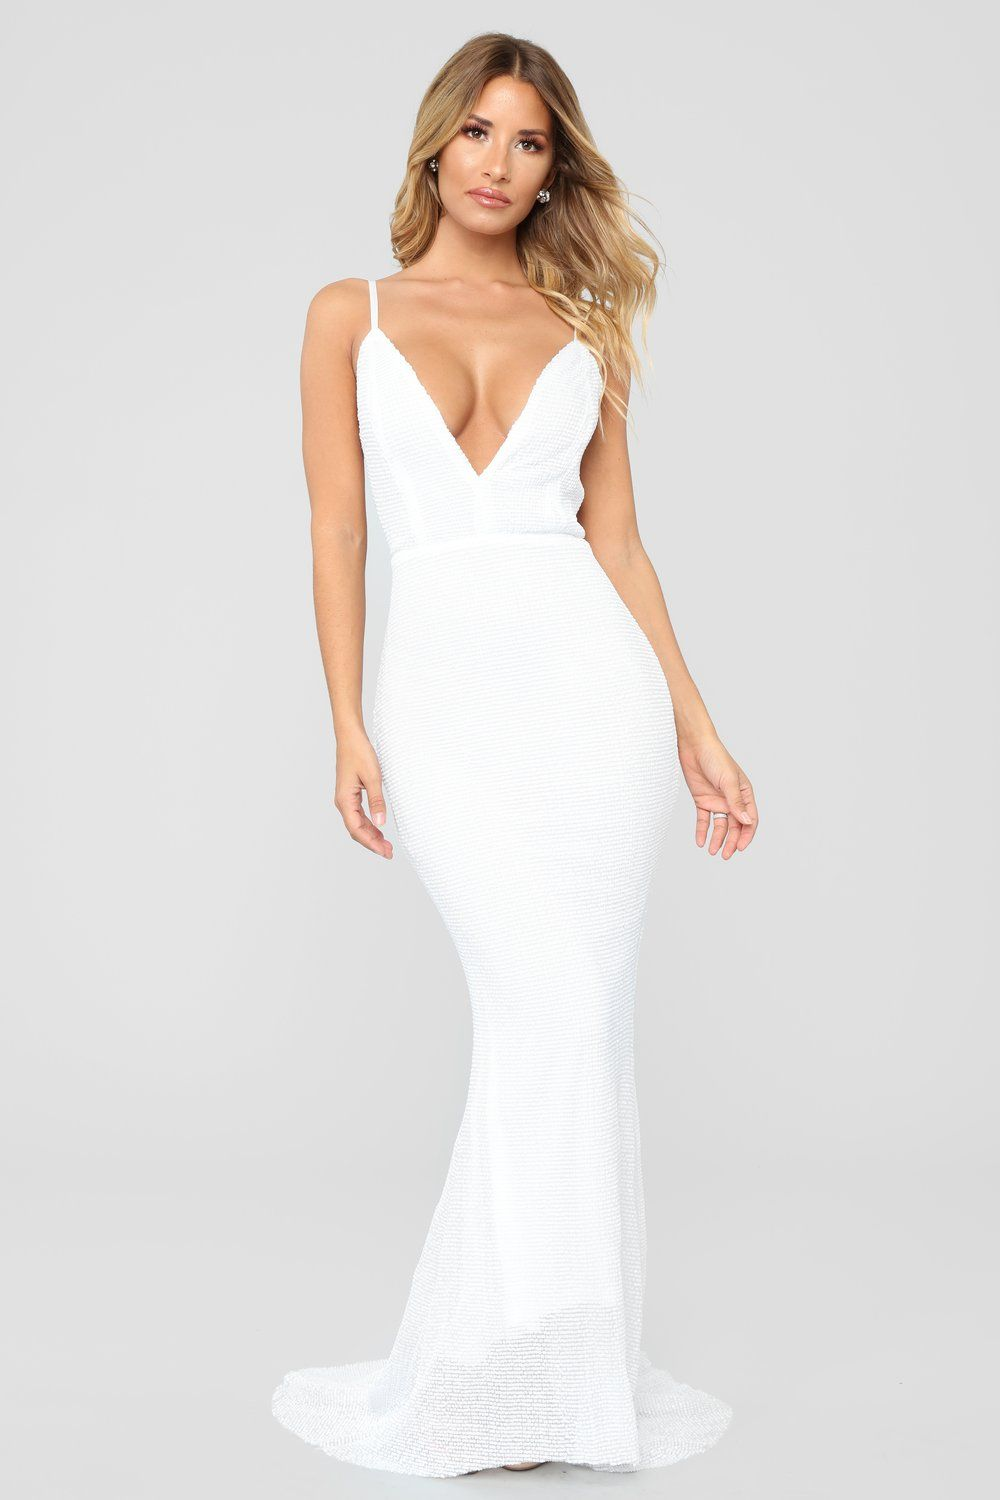 513f16aa6064 Sparkling Champagne Sequin Dress - White in 2019